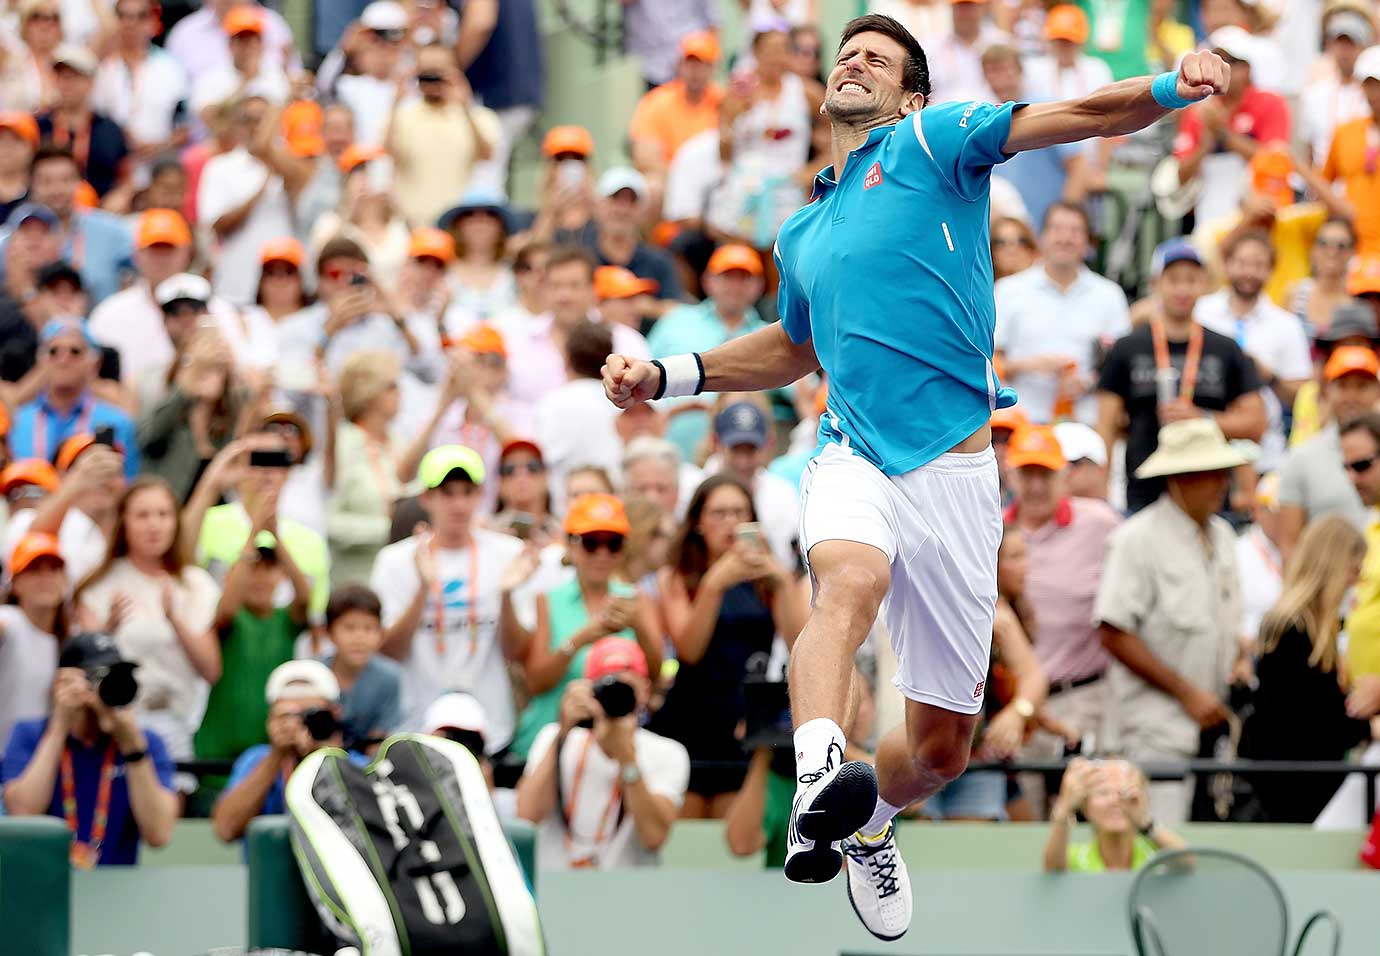 Novak Djokovic celebrates his win over Kei Nishikori of Japan in the championship match of the Miami Open.